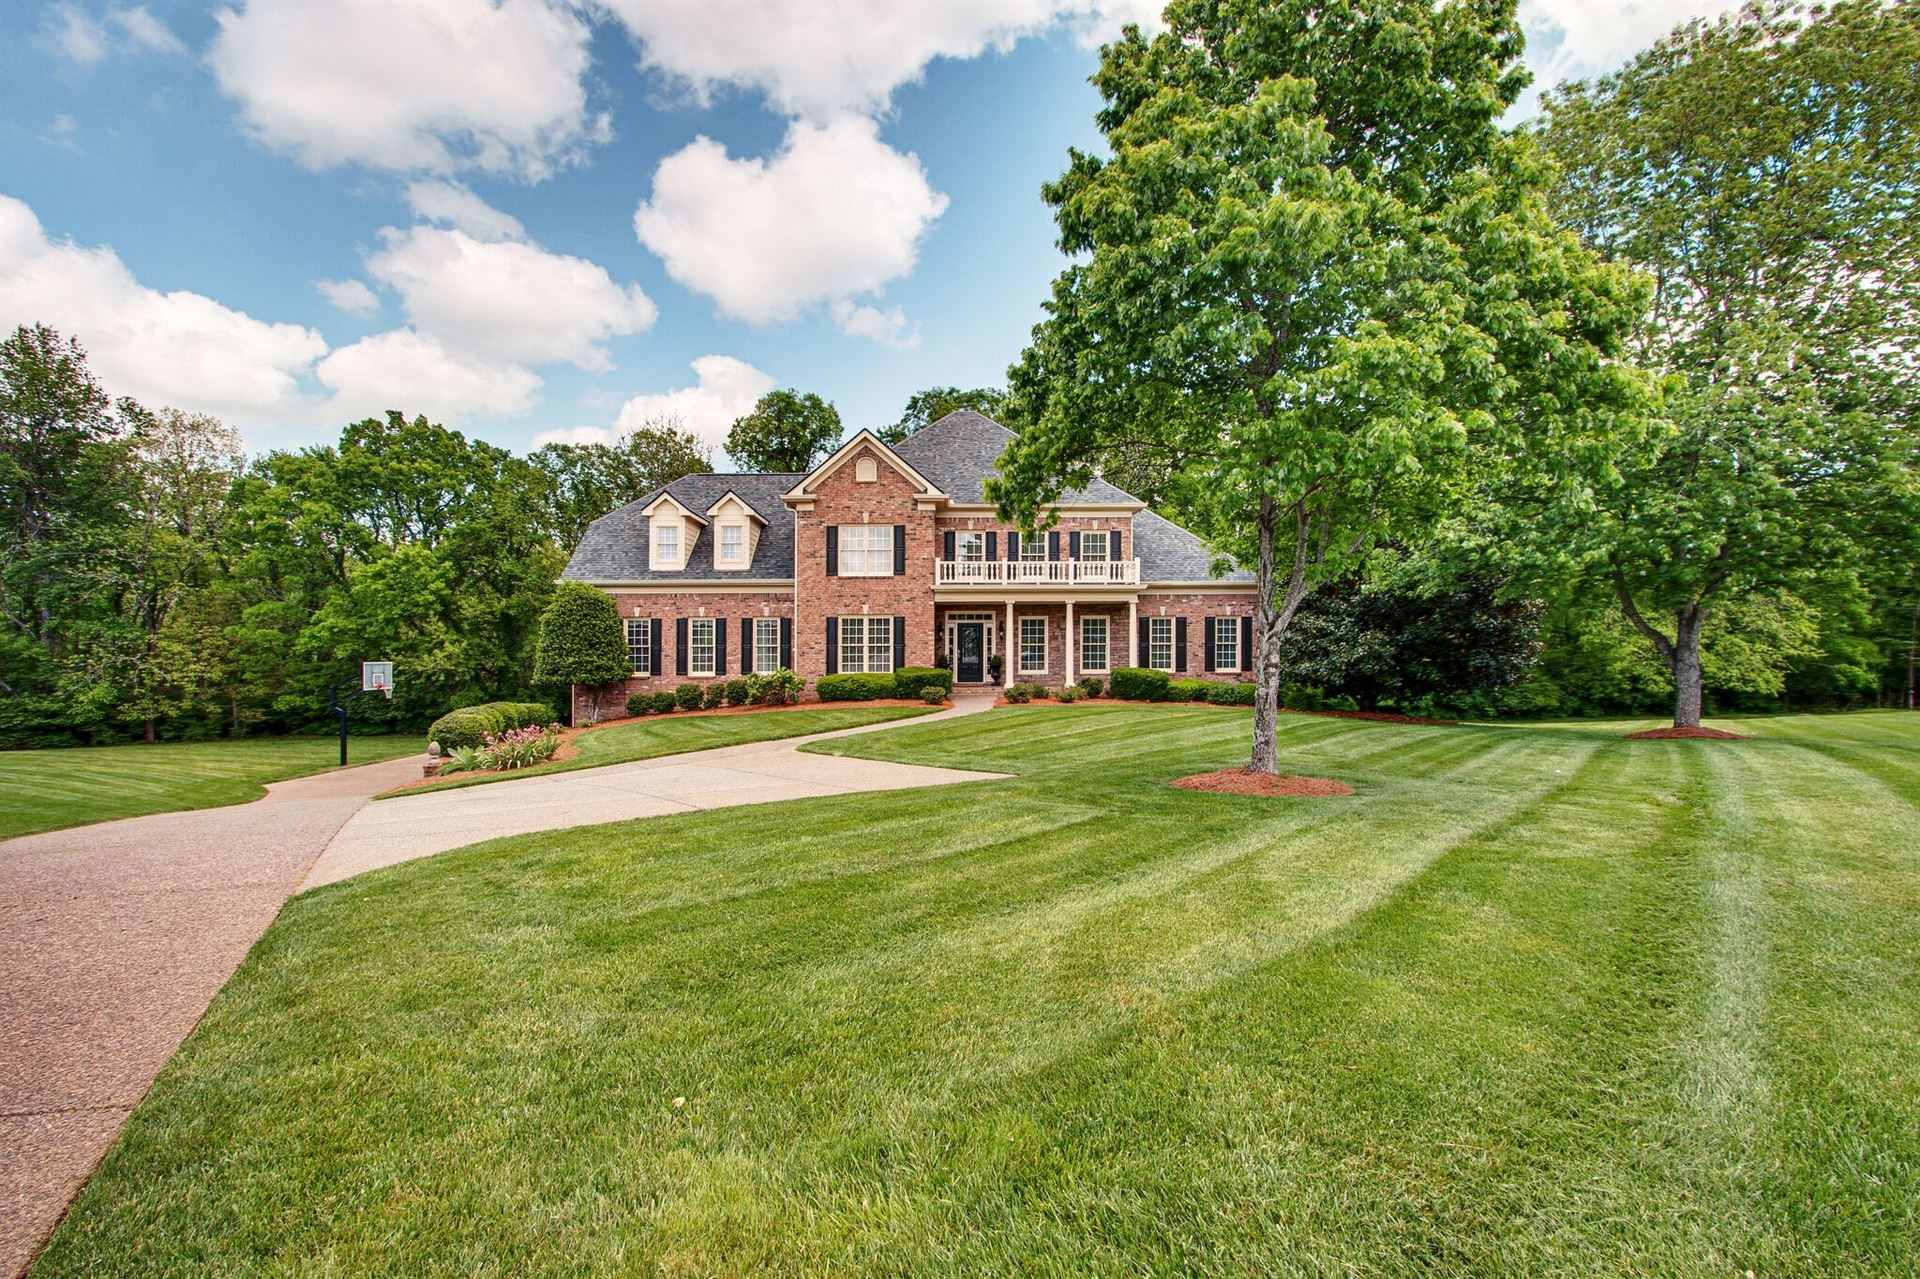 Photo of 8256 Dalewood Ct, Brentwood, TN 37027 (MLS # 2252317)